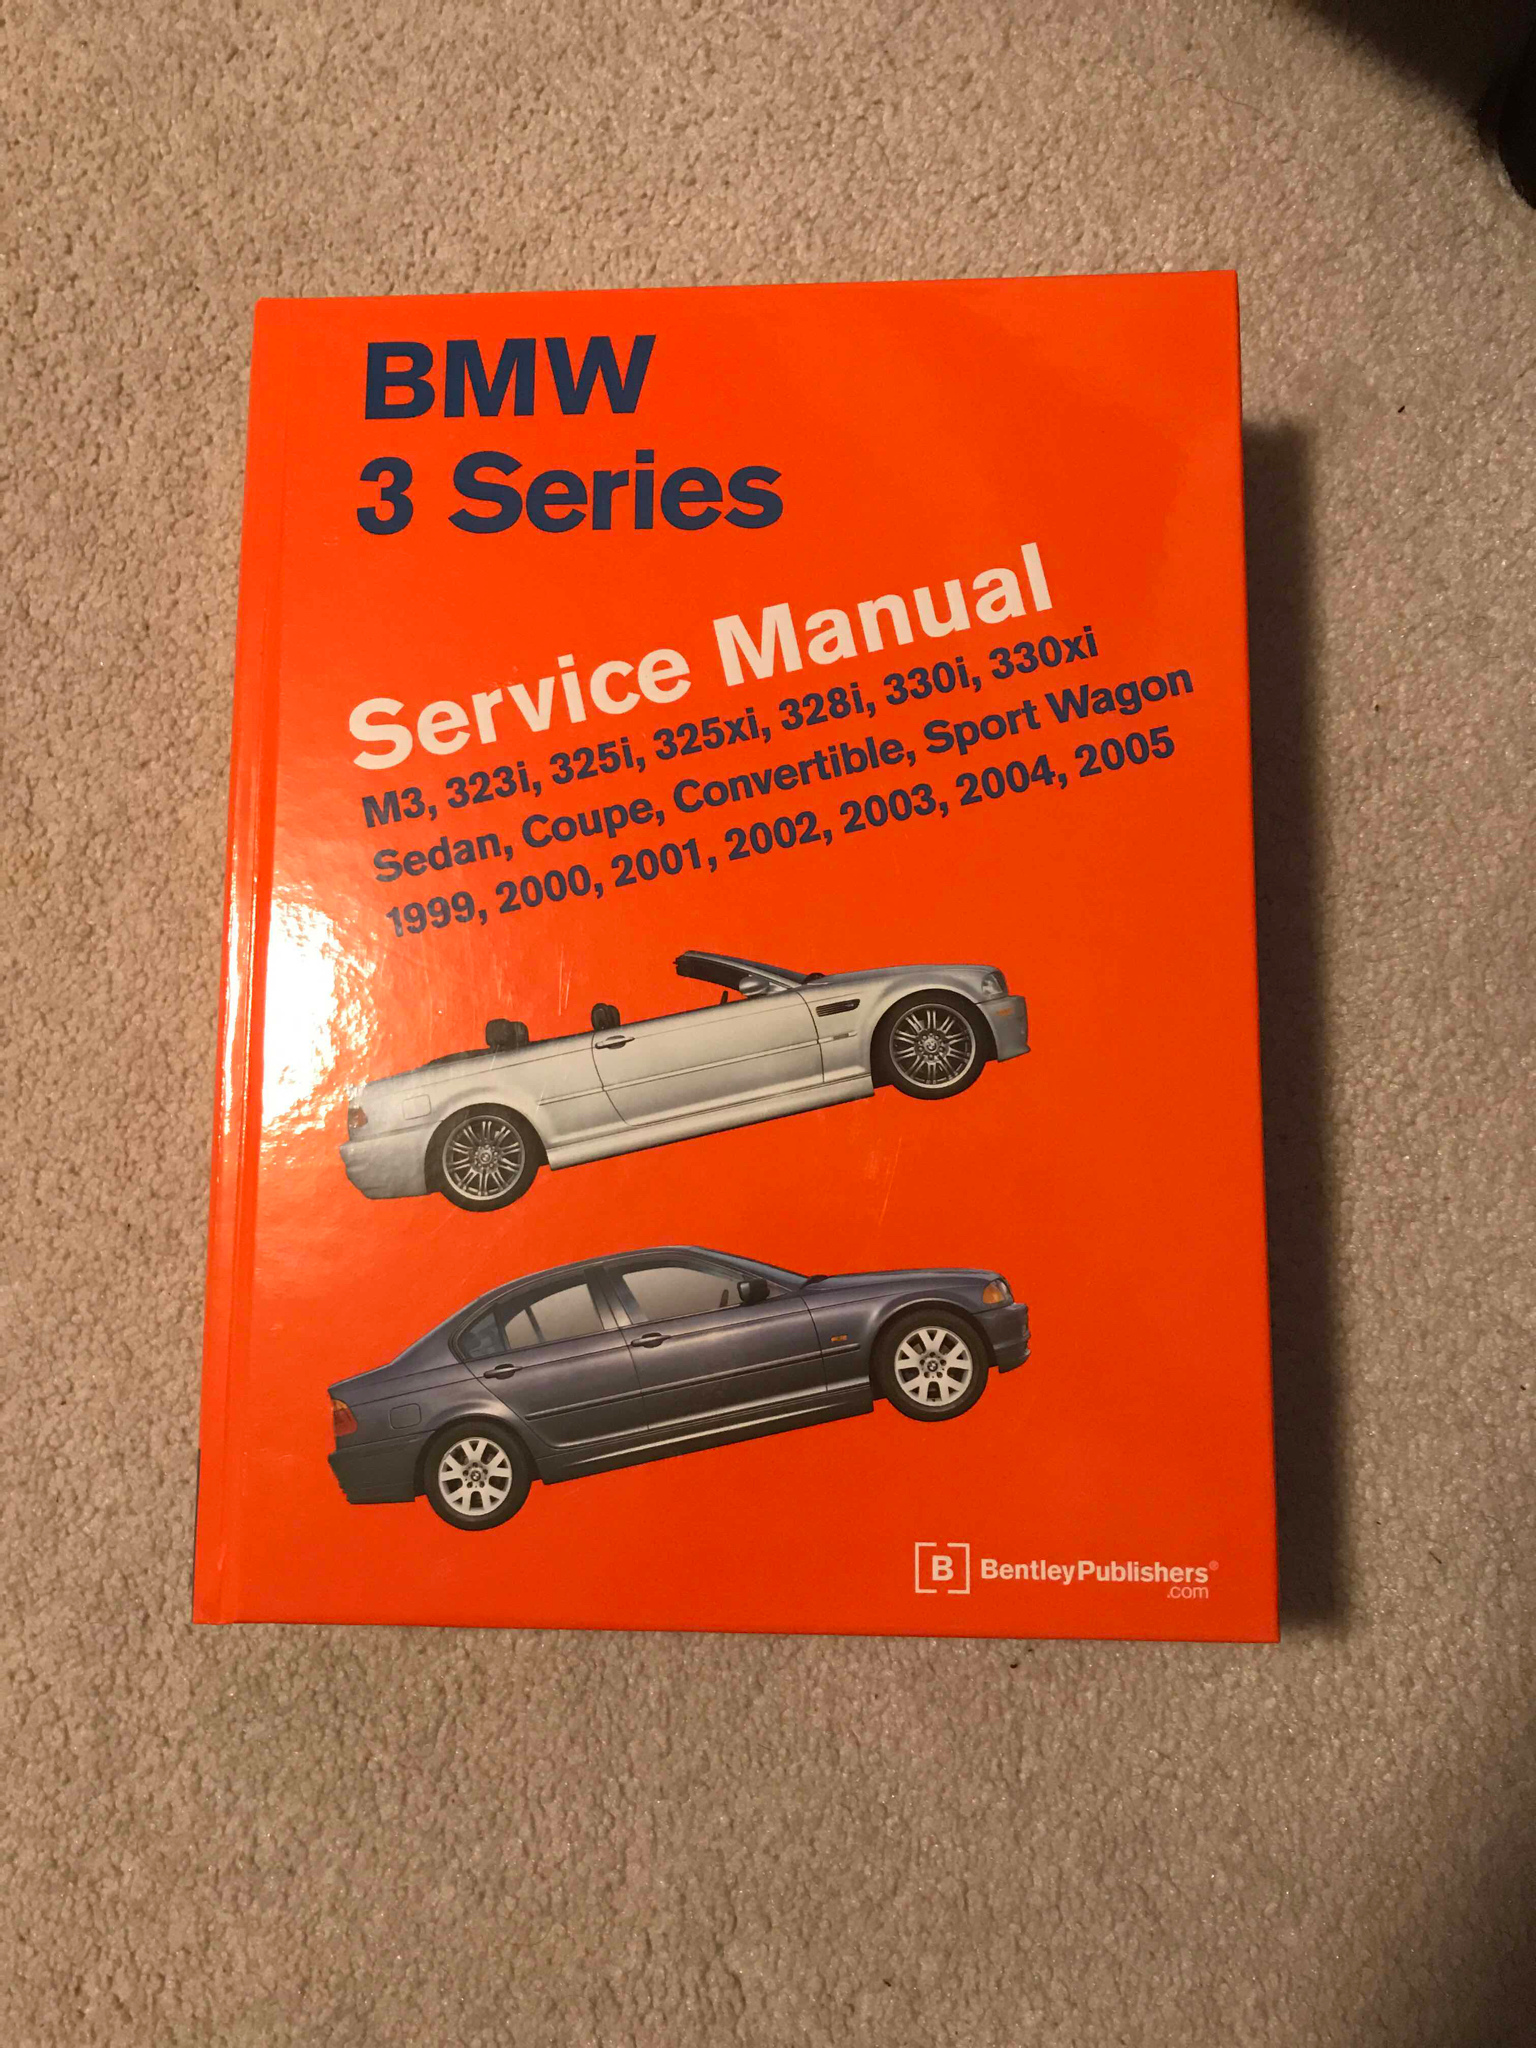 ... Array - 100 2005 bmw 325i sports wagon owners manual 2008 bmw 3 rh ...